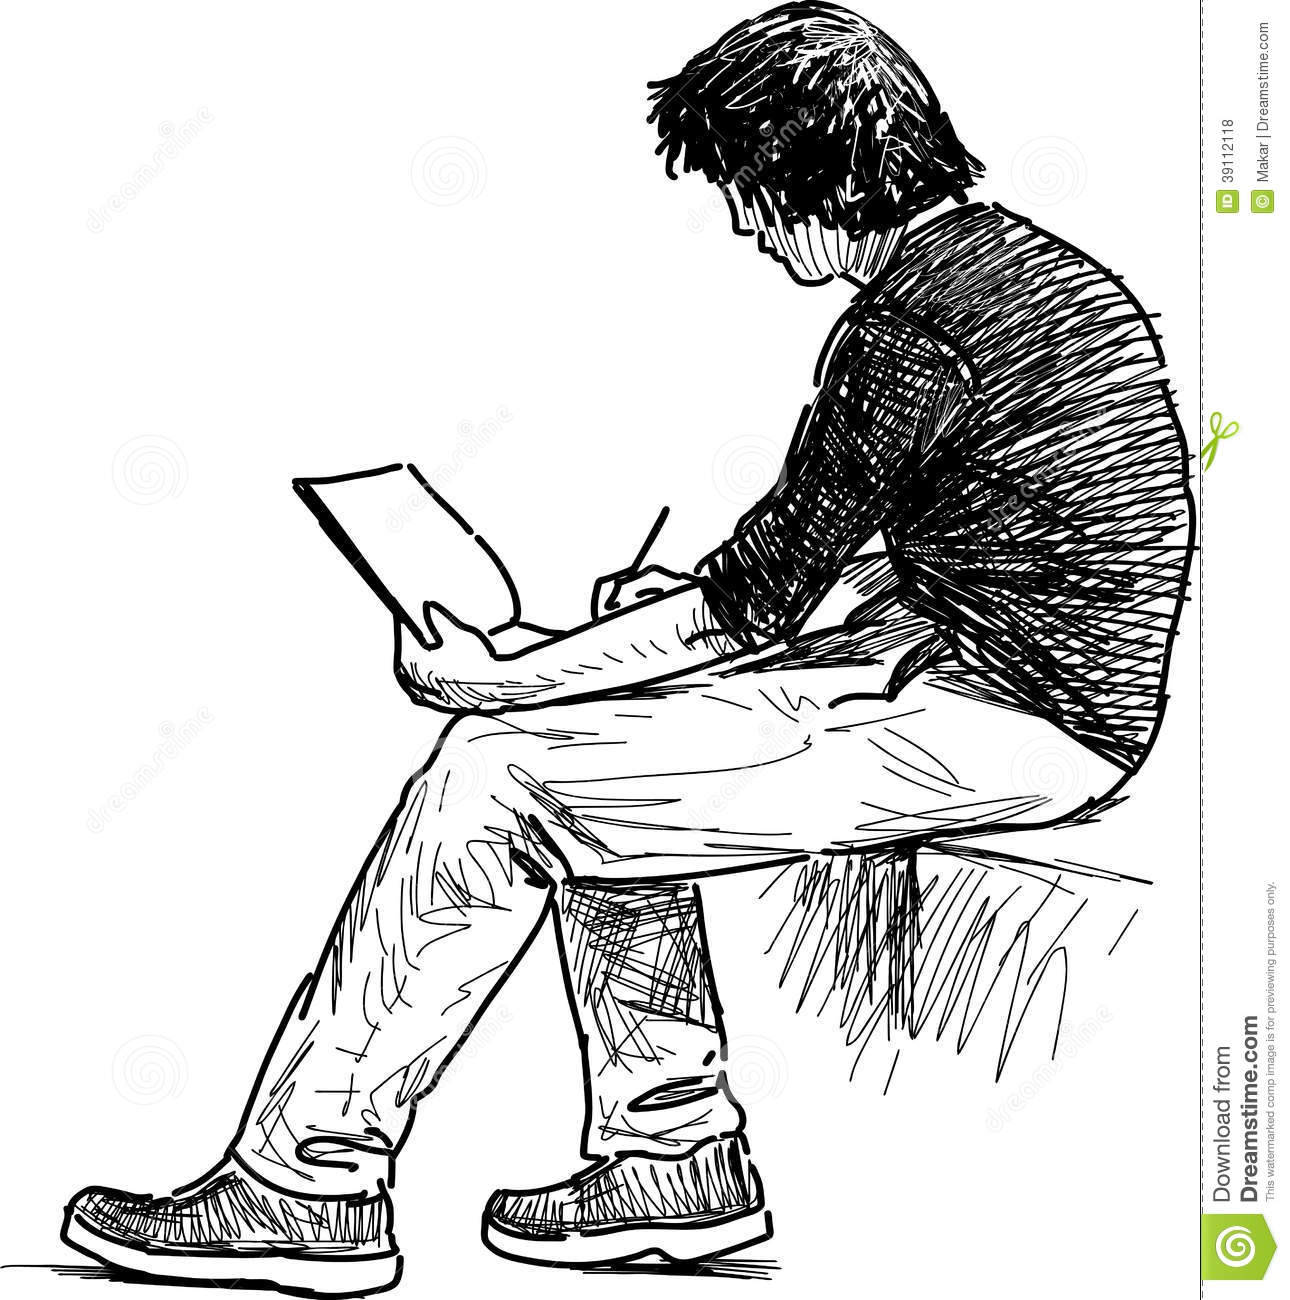 Young Man Makes Sketches Stock Photo. Image Of White - 39112118